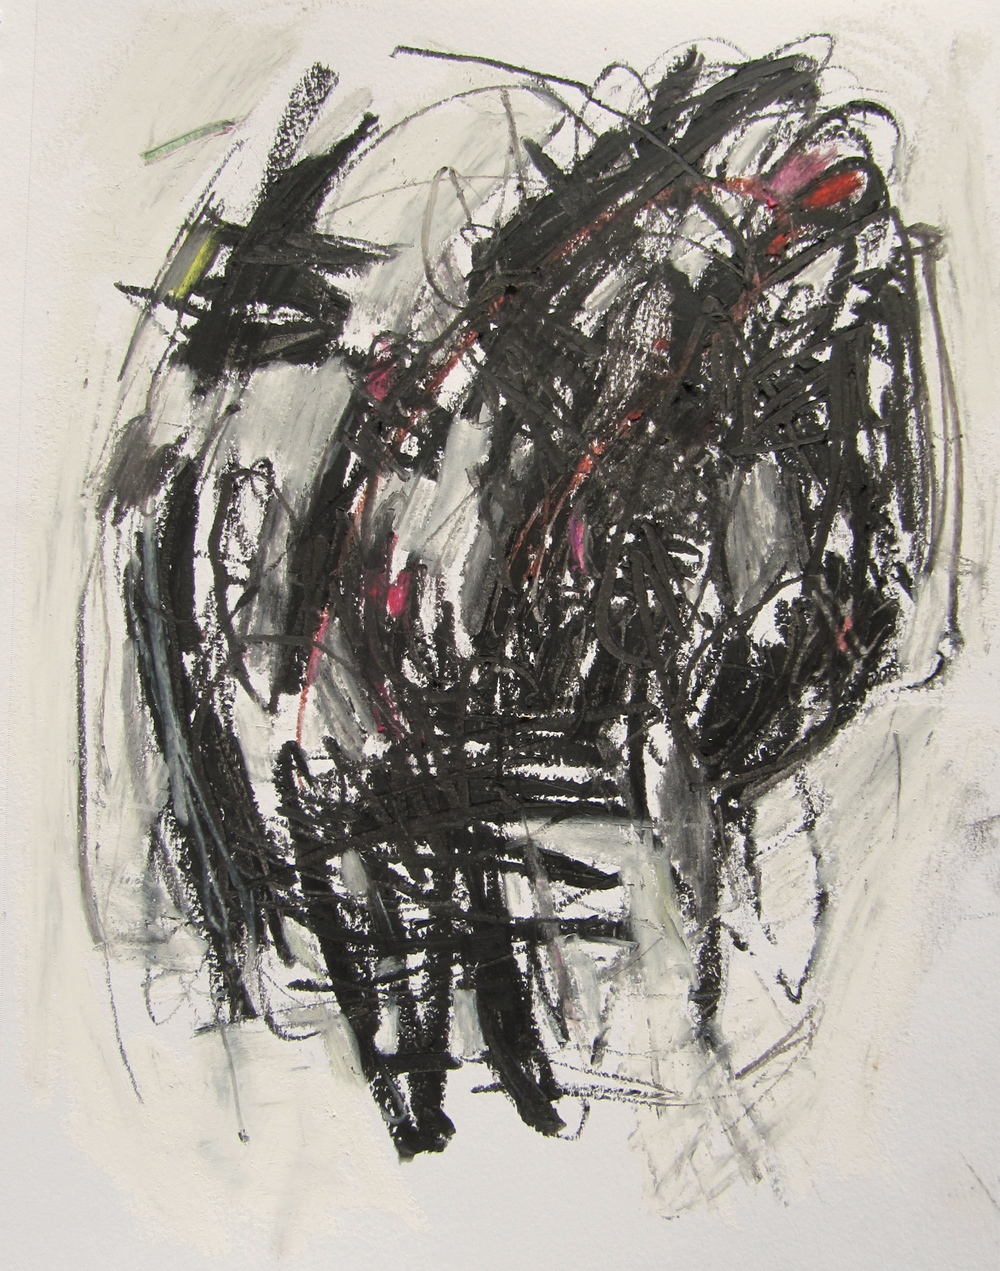 Untitled (for Joan), 2014  /  Pastel and charcoal on paper (unmounted and unframed), 9 x 12